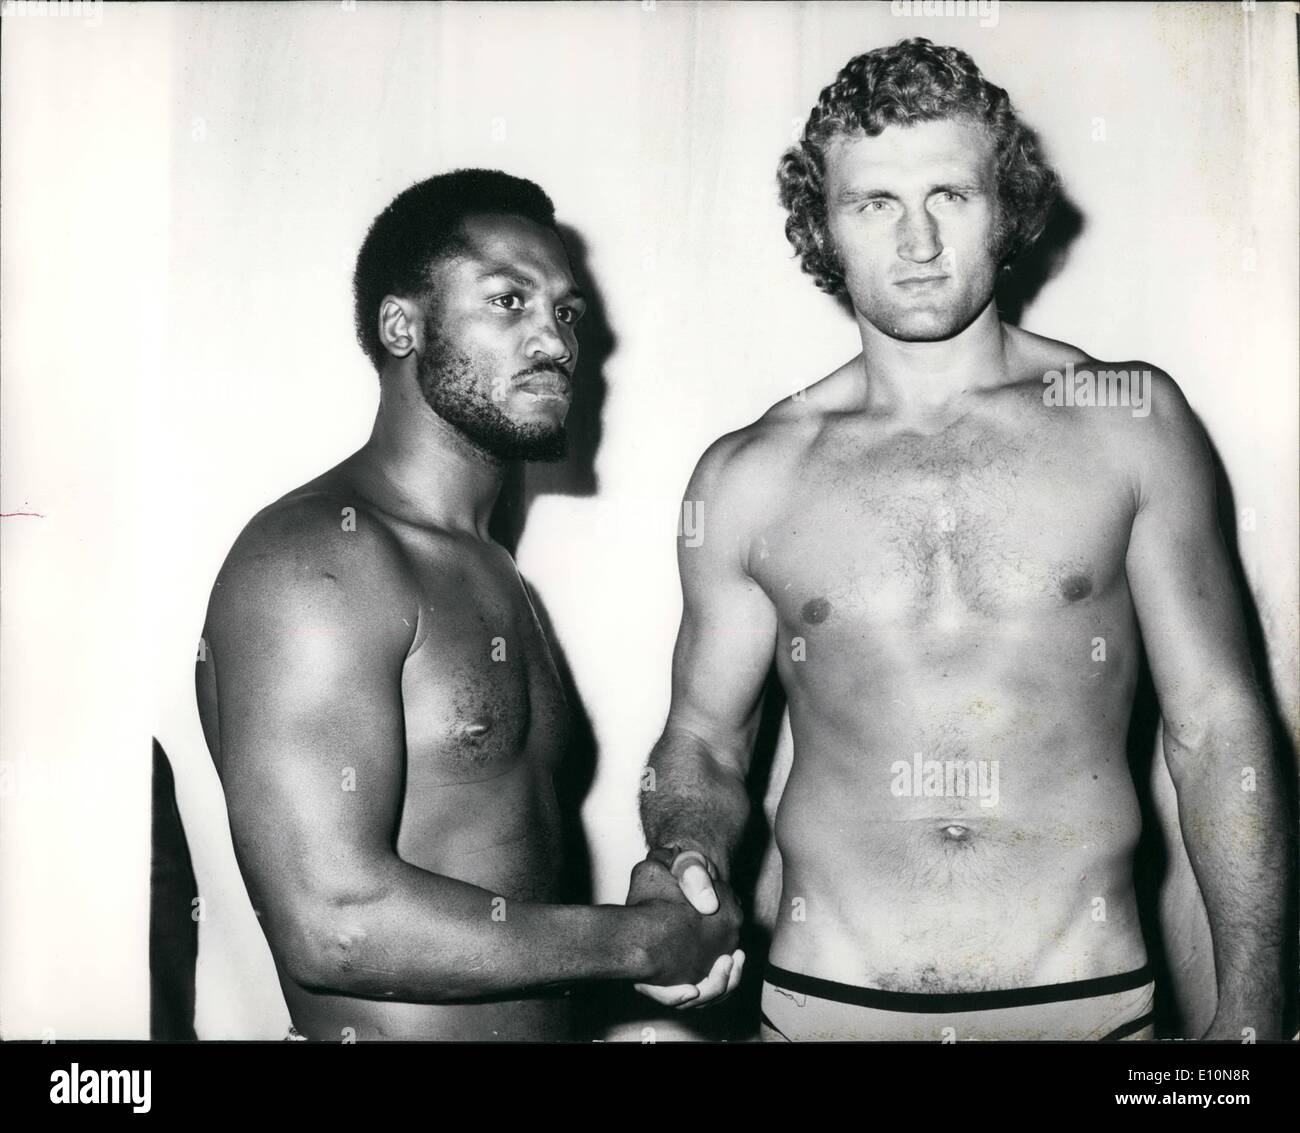 Jul. 07, 1973 - Bugner And Frazier Weigh-In For Tonight's Fight: Joe Bugner, the European Heavyweight Champion, and Joe Frazier, the Former world champion, today weighed-in for their fight tonight at Earls Court, London.Photo Shows Joe Frazier and Joe Bugner shaking hands at today's weigh-in. - Stock Image